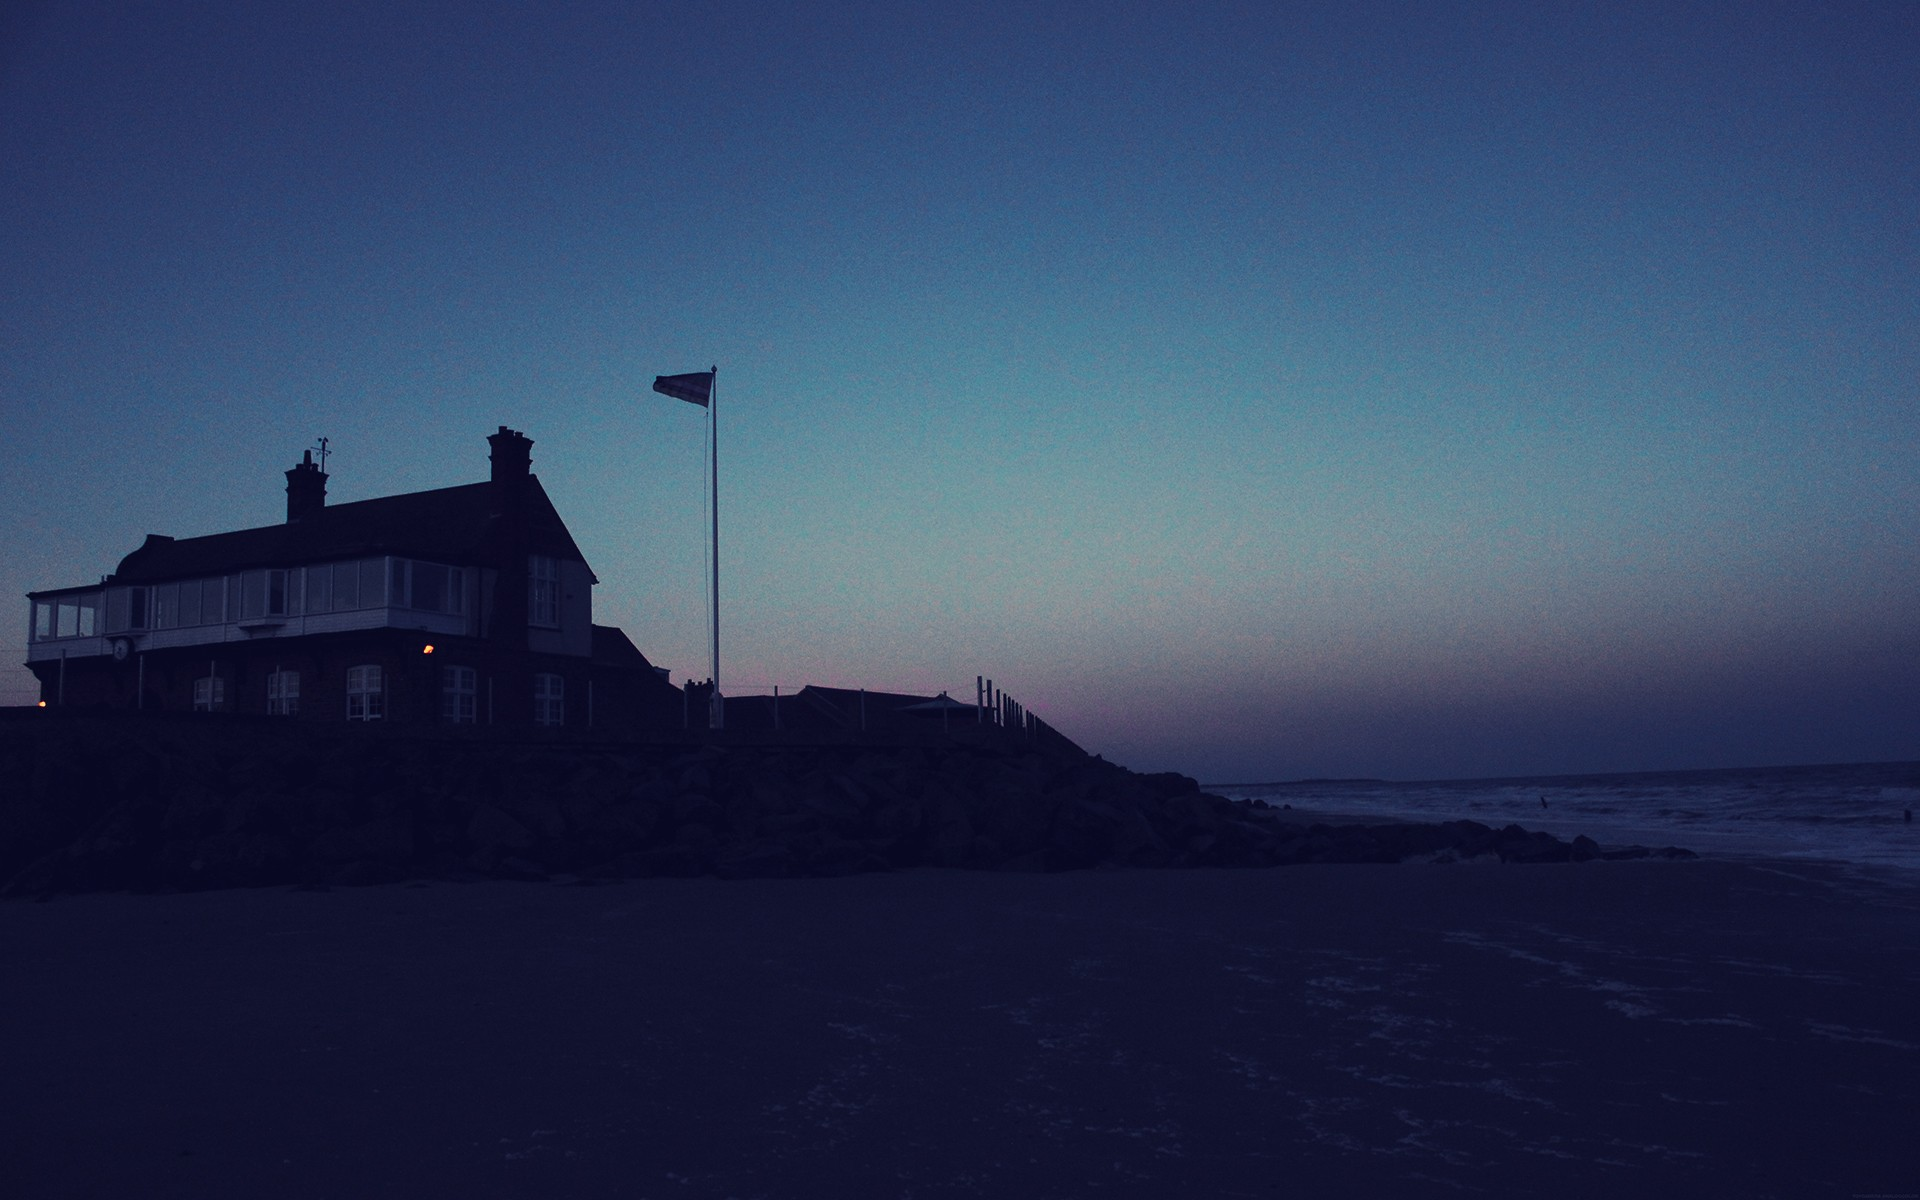 3d Wallpaper House Malaysia Beach House At Night Wallpapers Beach House At Night